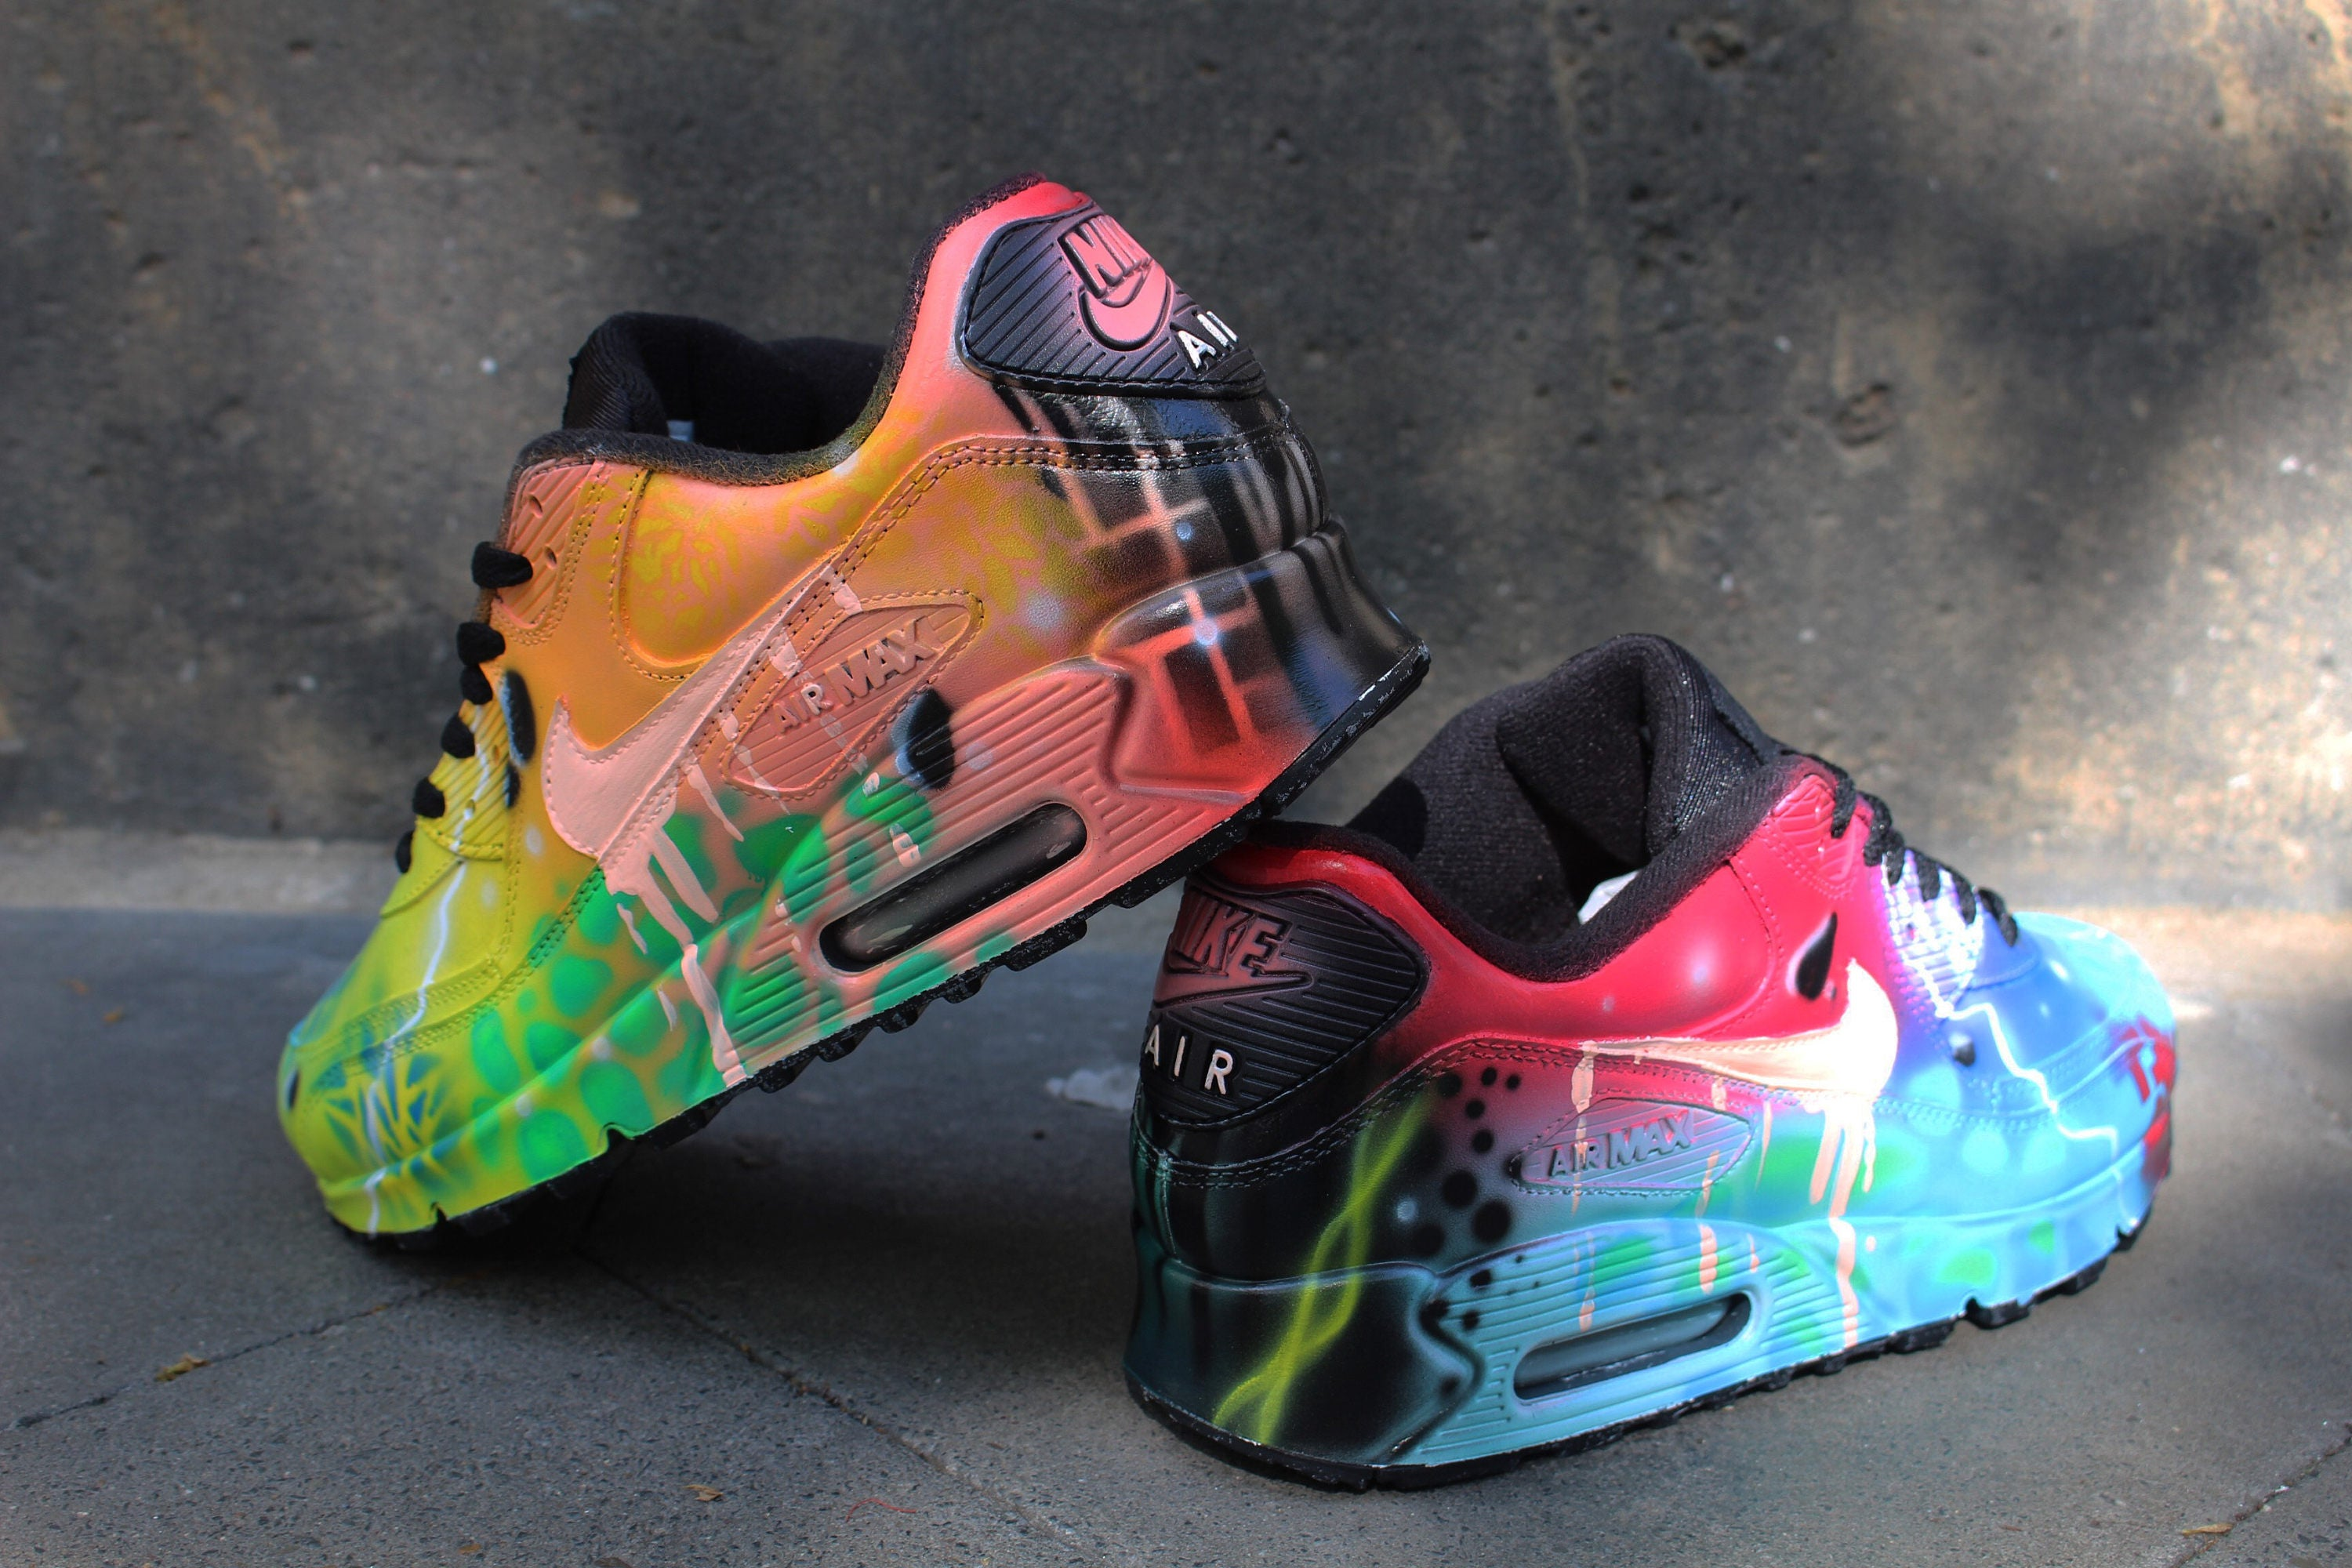 Custom Airbrush Painted Nike Air Max 90 Crazy Funky Colours